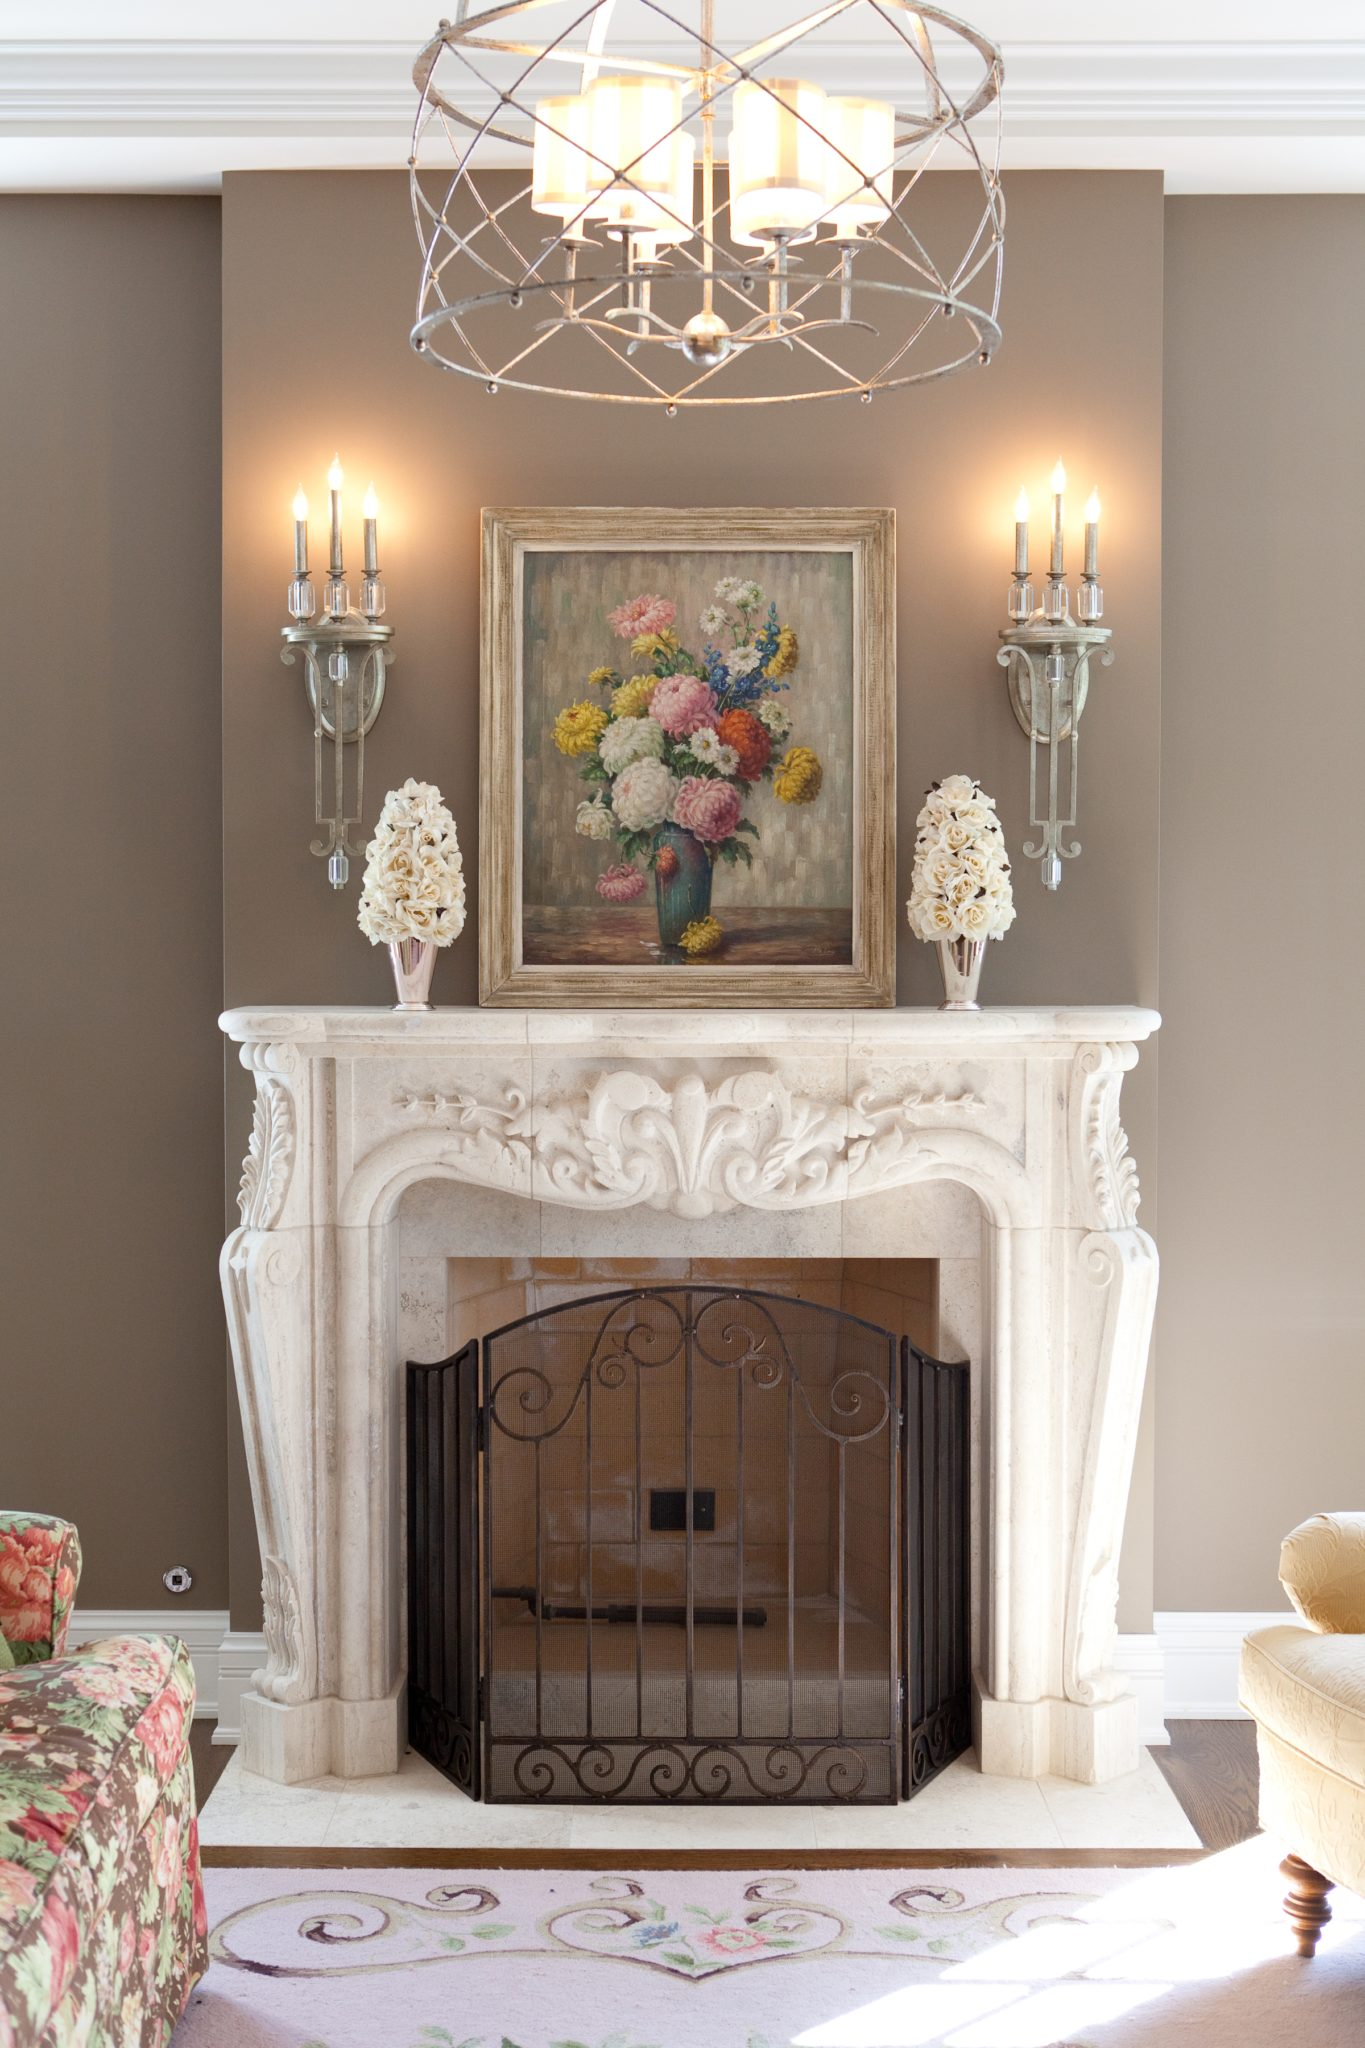 Elegance and symmetry defines a traditional fireplace vignette. by Michelle's Interiors